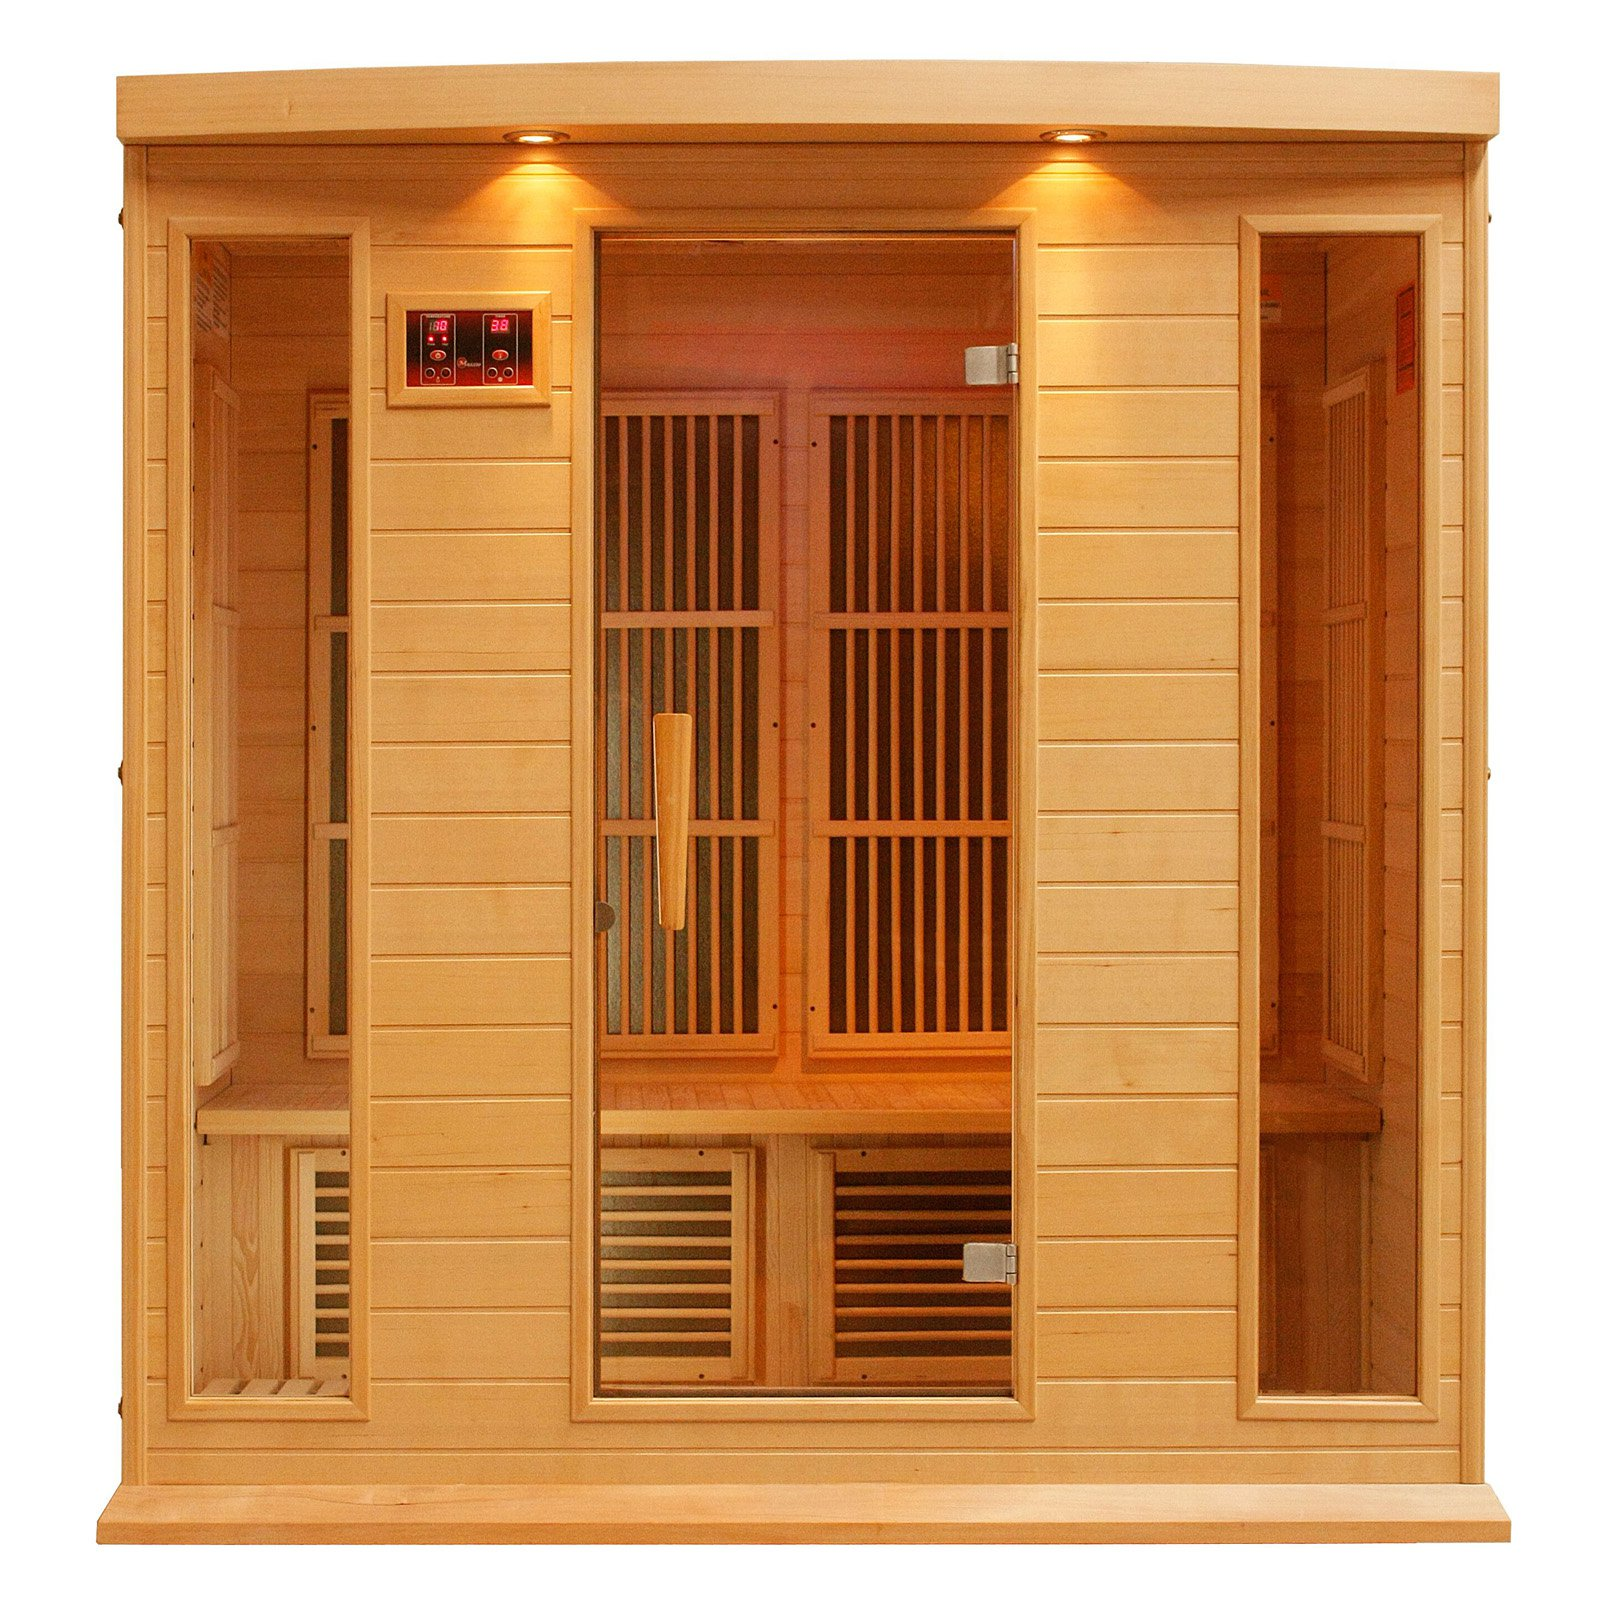 Maxxus Sauna 4 Person Carbon Sauna